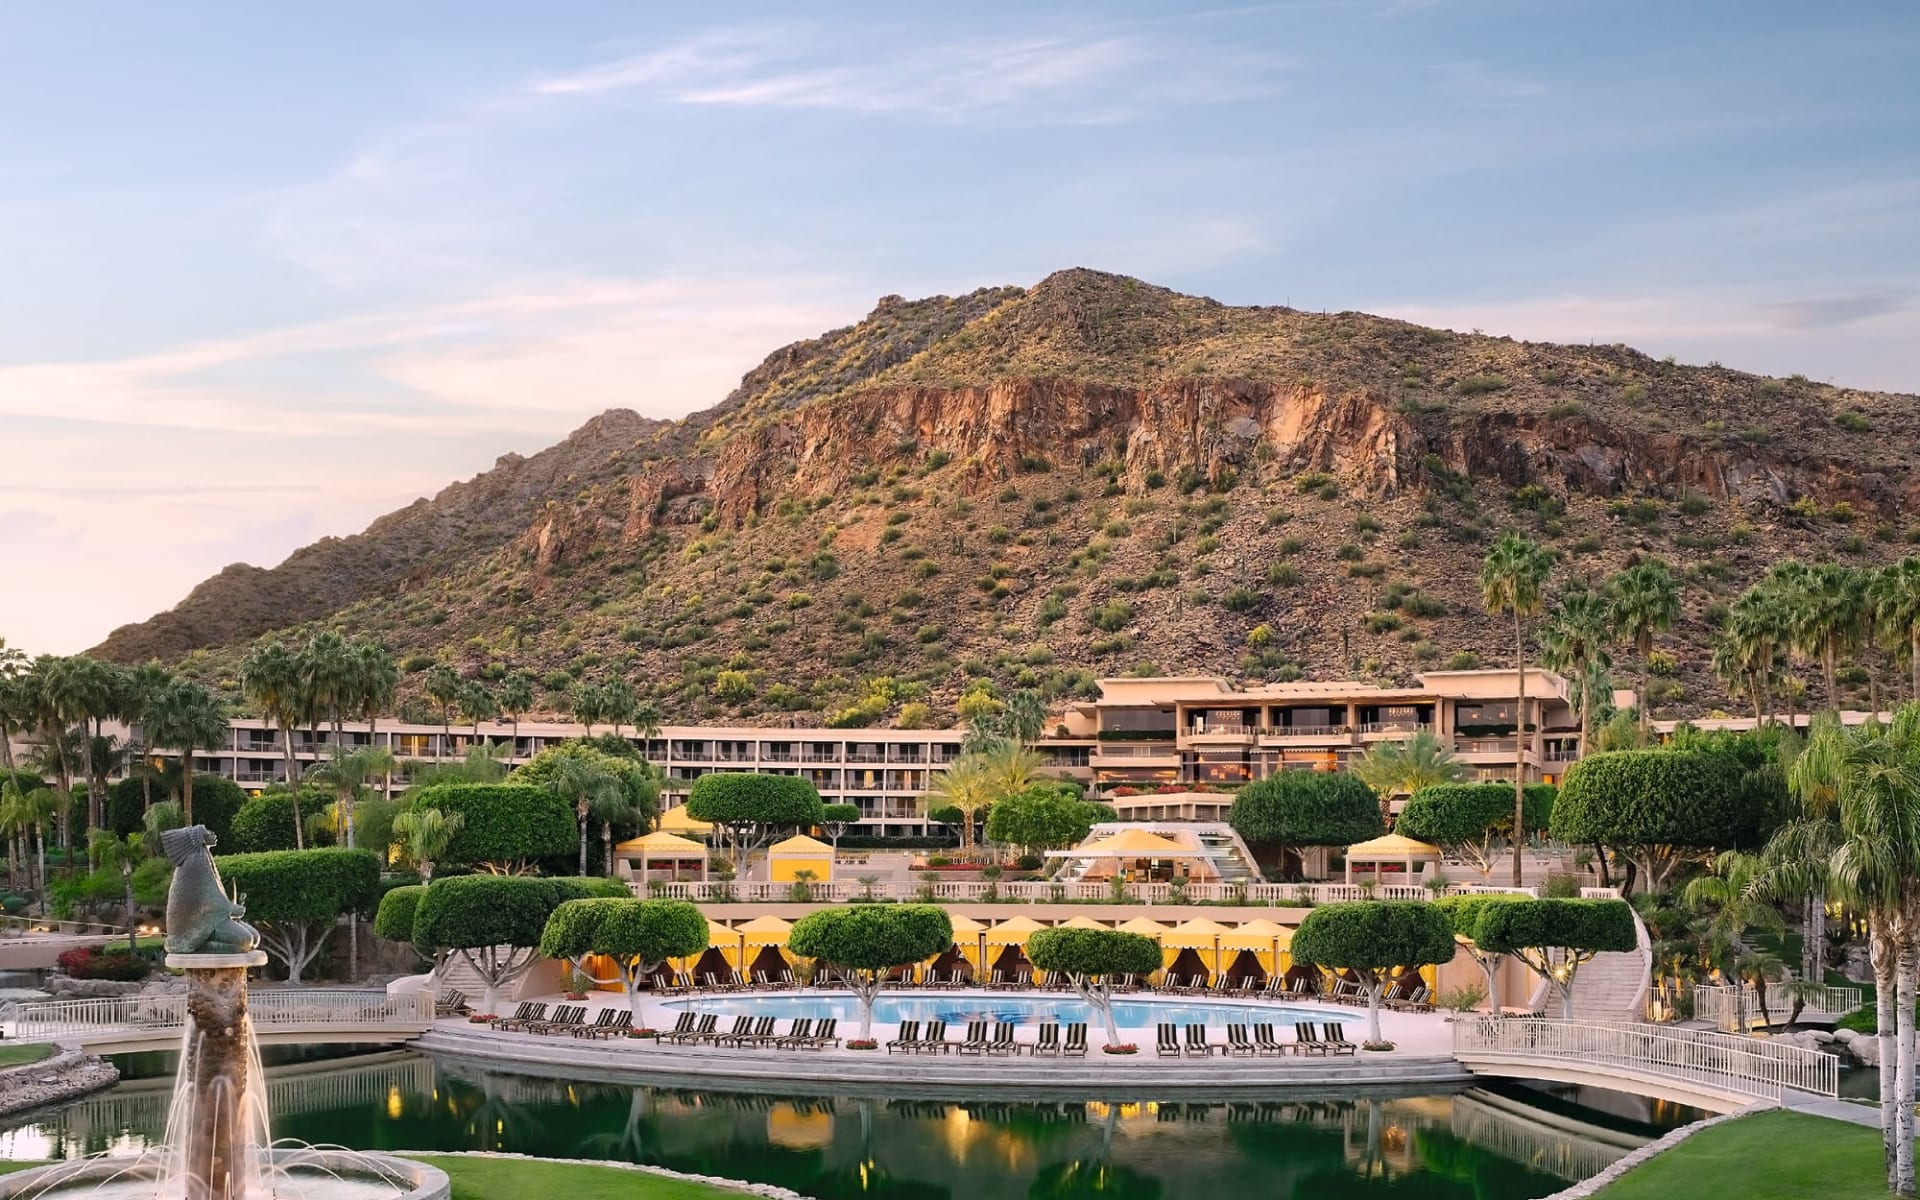 The Phoenician in Scottsdale: The Phoenician - Aussenansicht